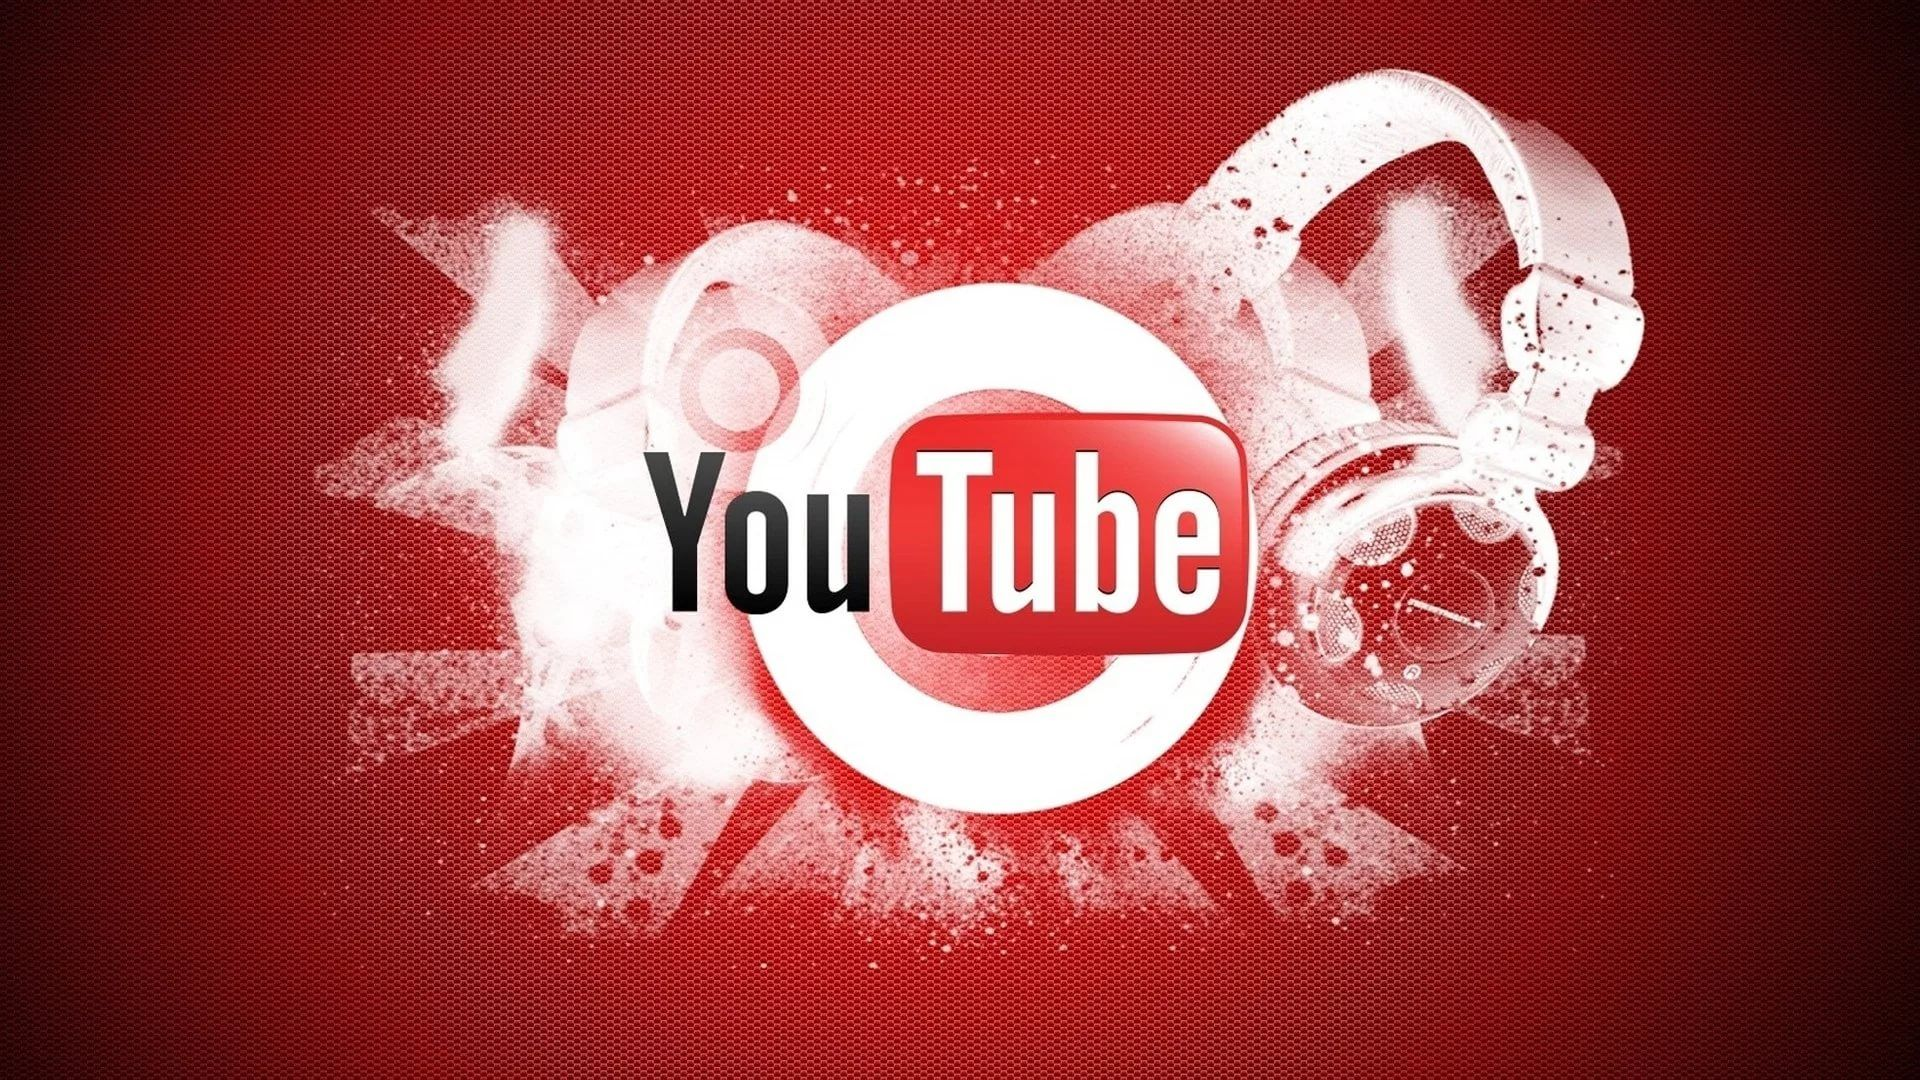 Youtube Cool Wallpaper